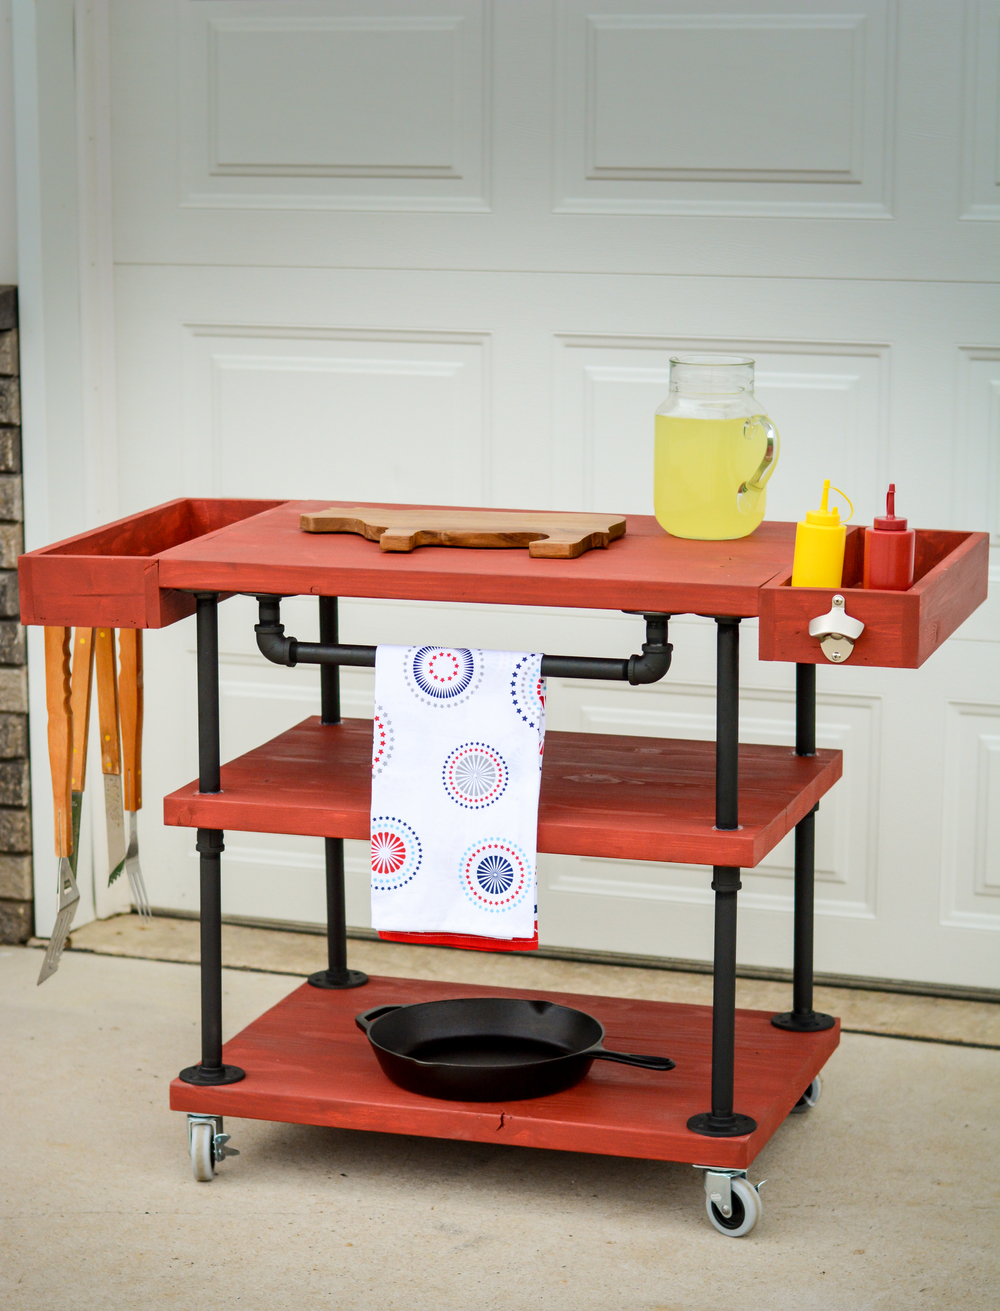 DIY Grill Station With 60s Flavor